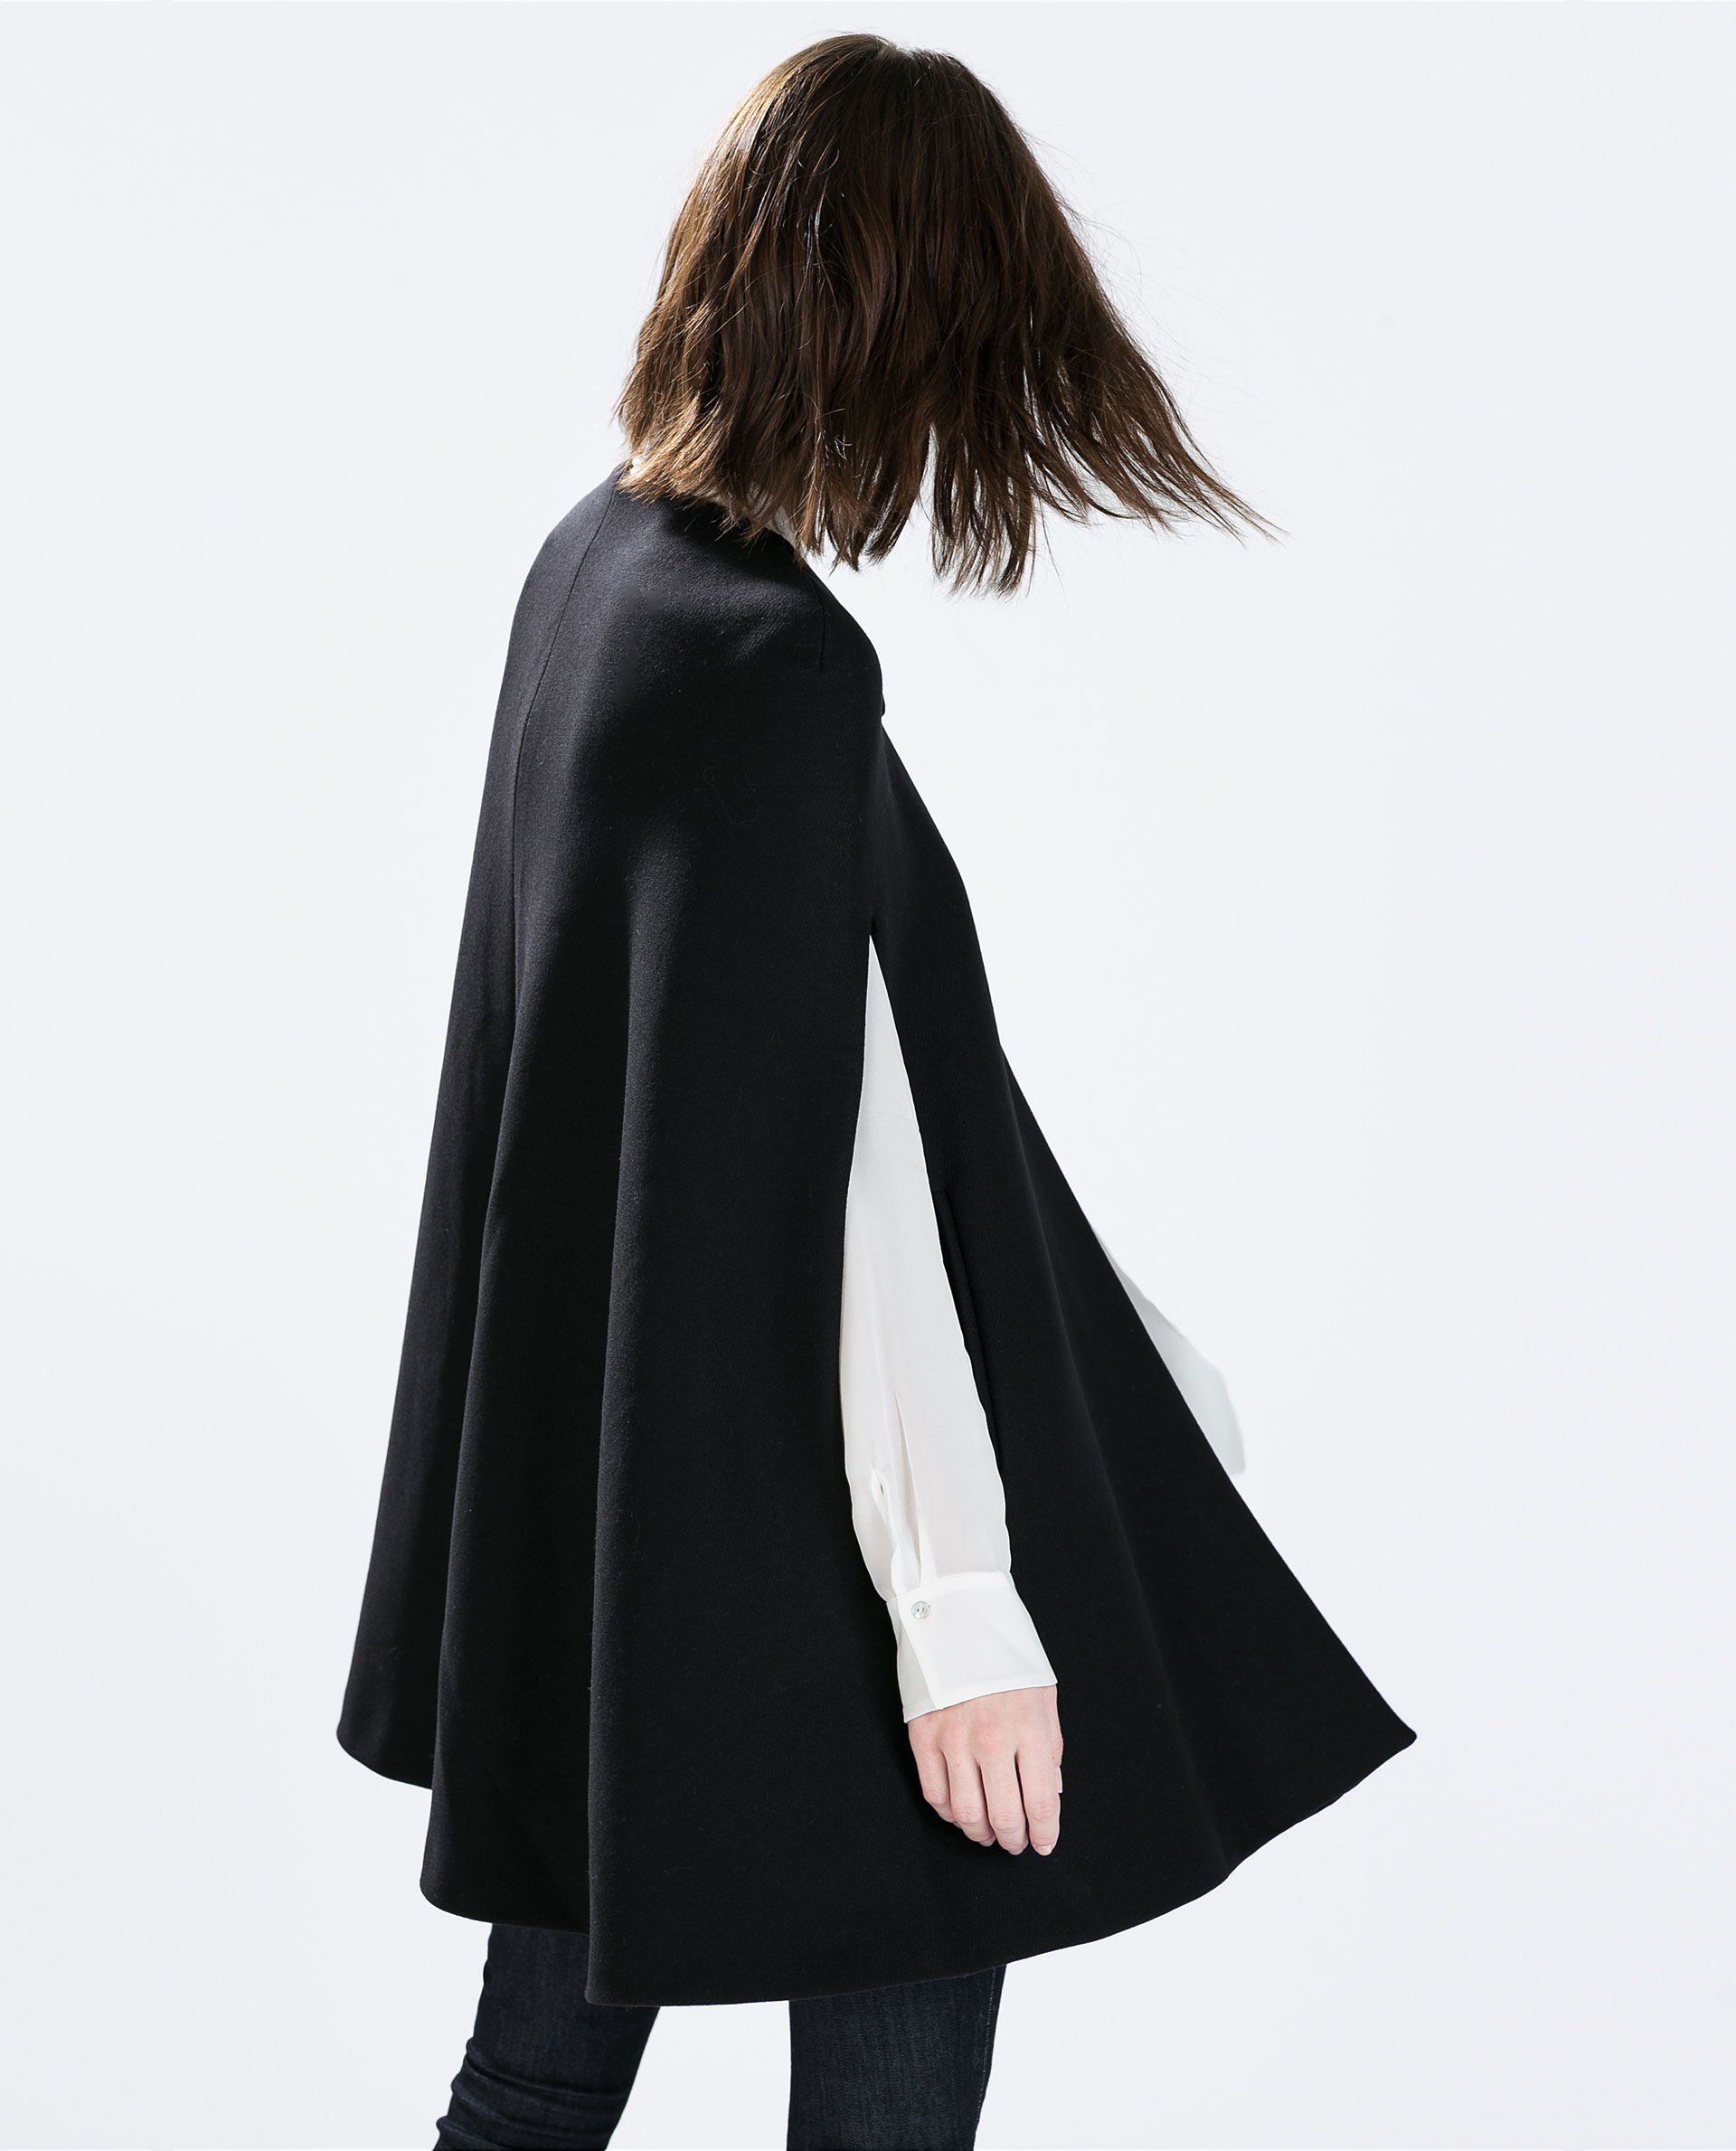 Topshop cape coat